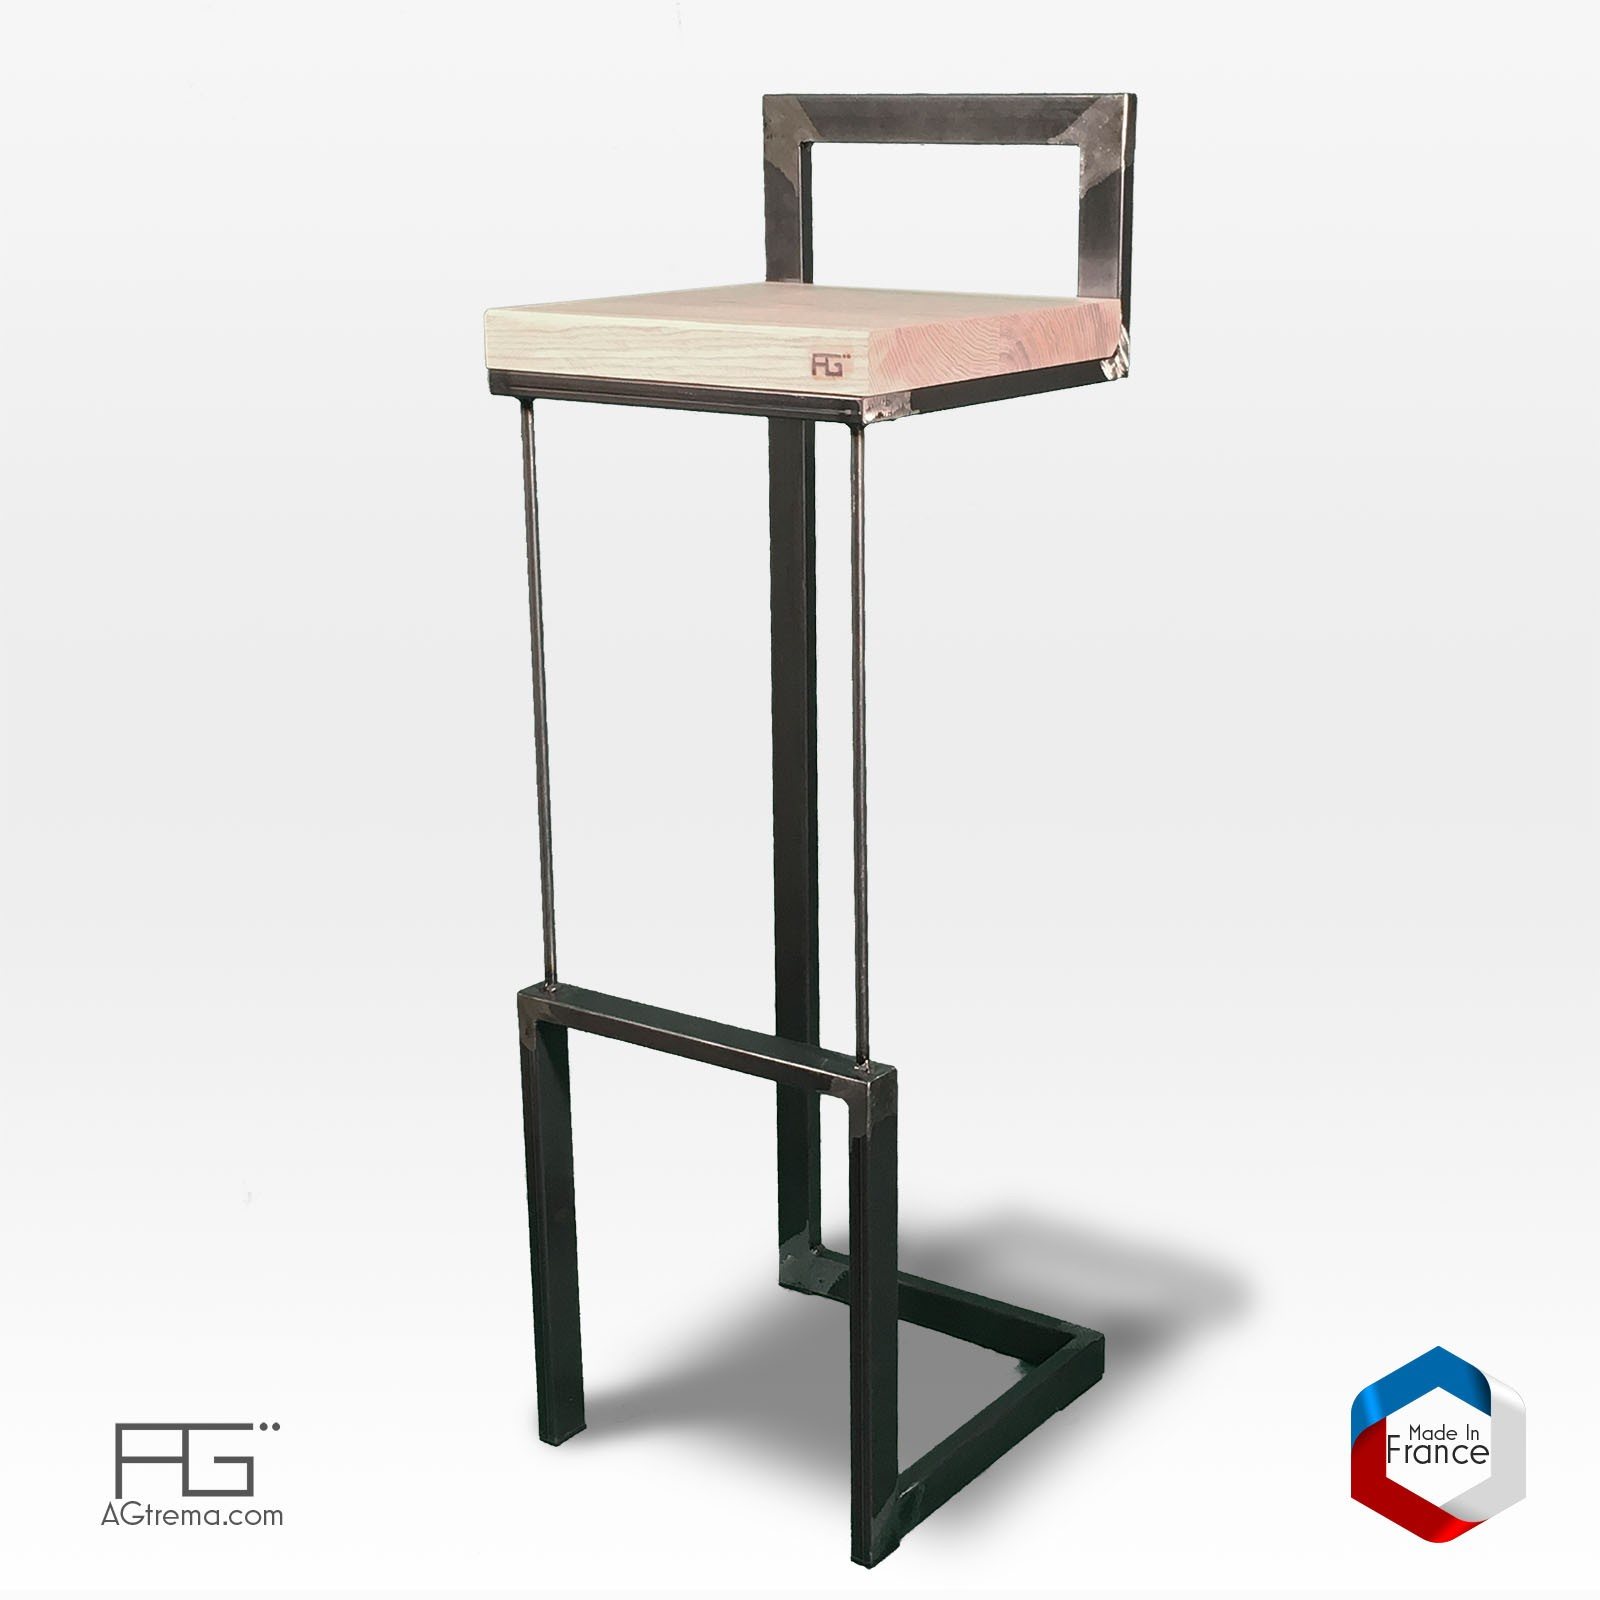 tabouret de bar buccula en acier brut et bois massif agtrema. Black Bedroom Furniture Sets. Home Design Ideas